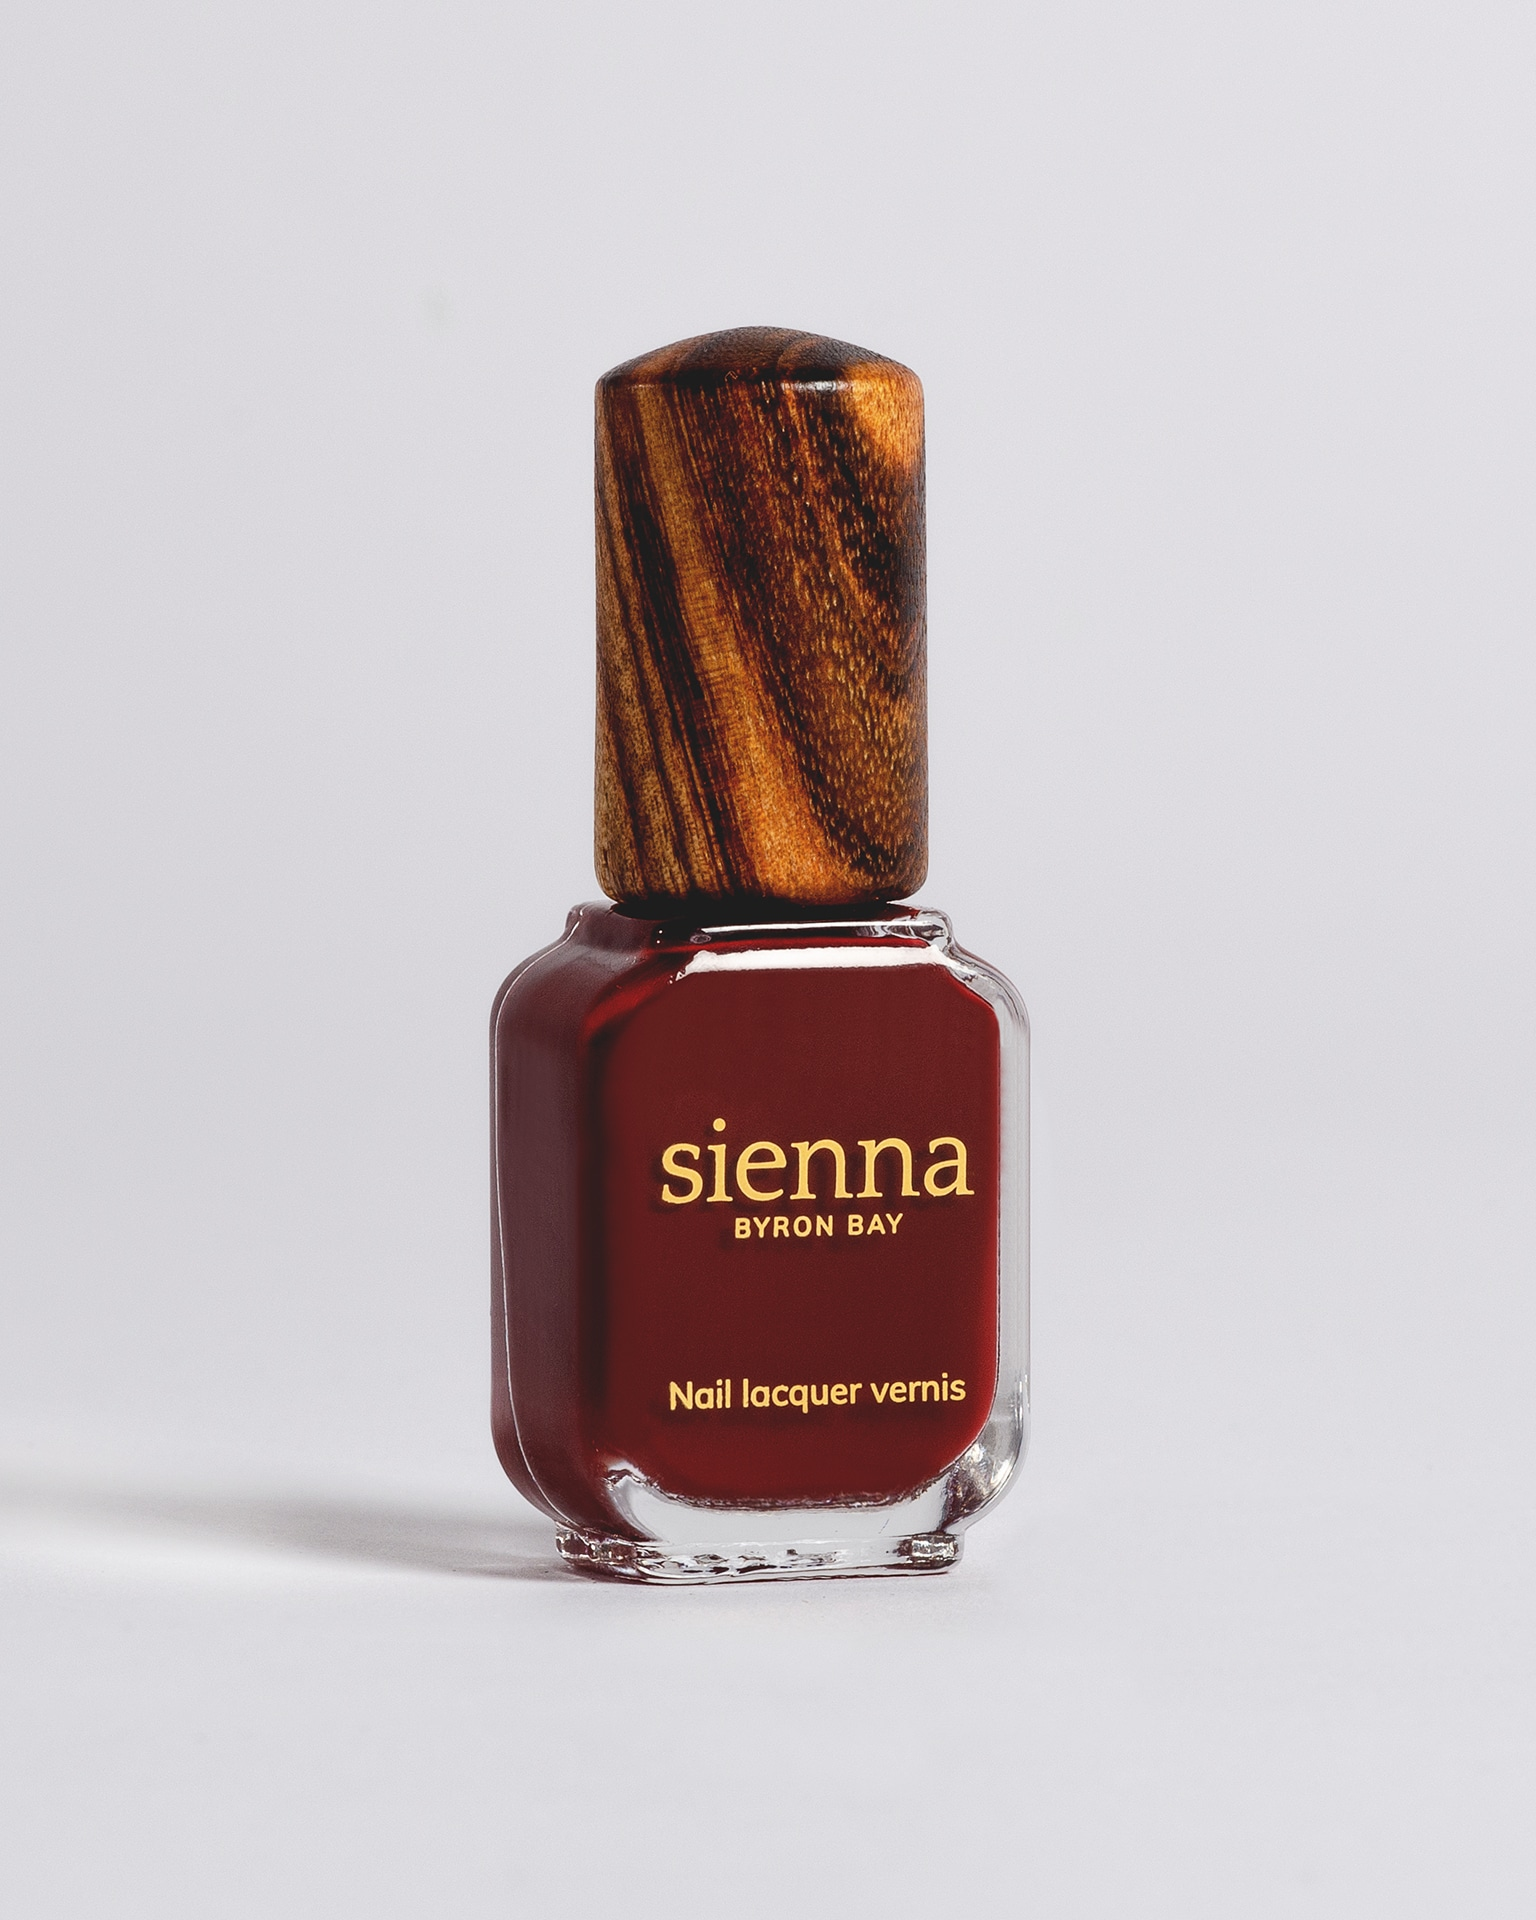 dark red nail polish bottle with timber cap by sienna